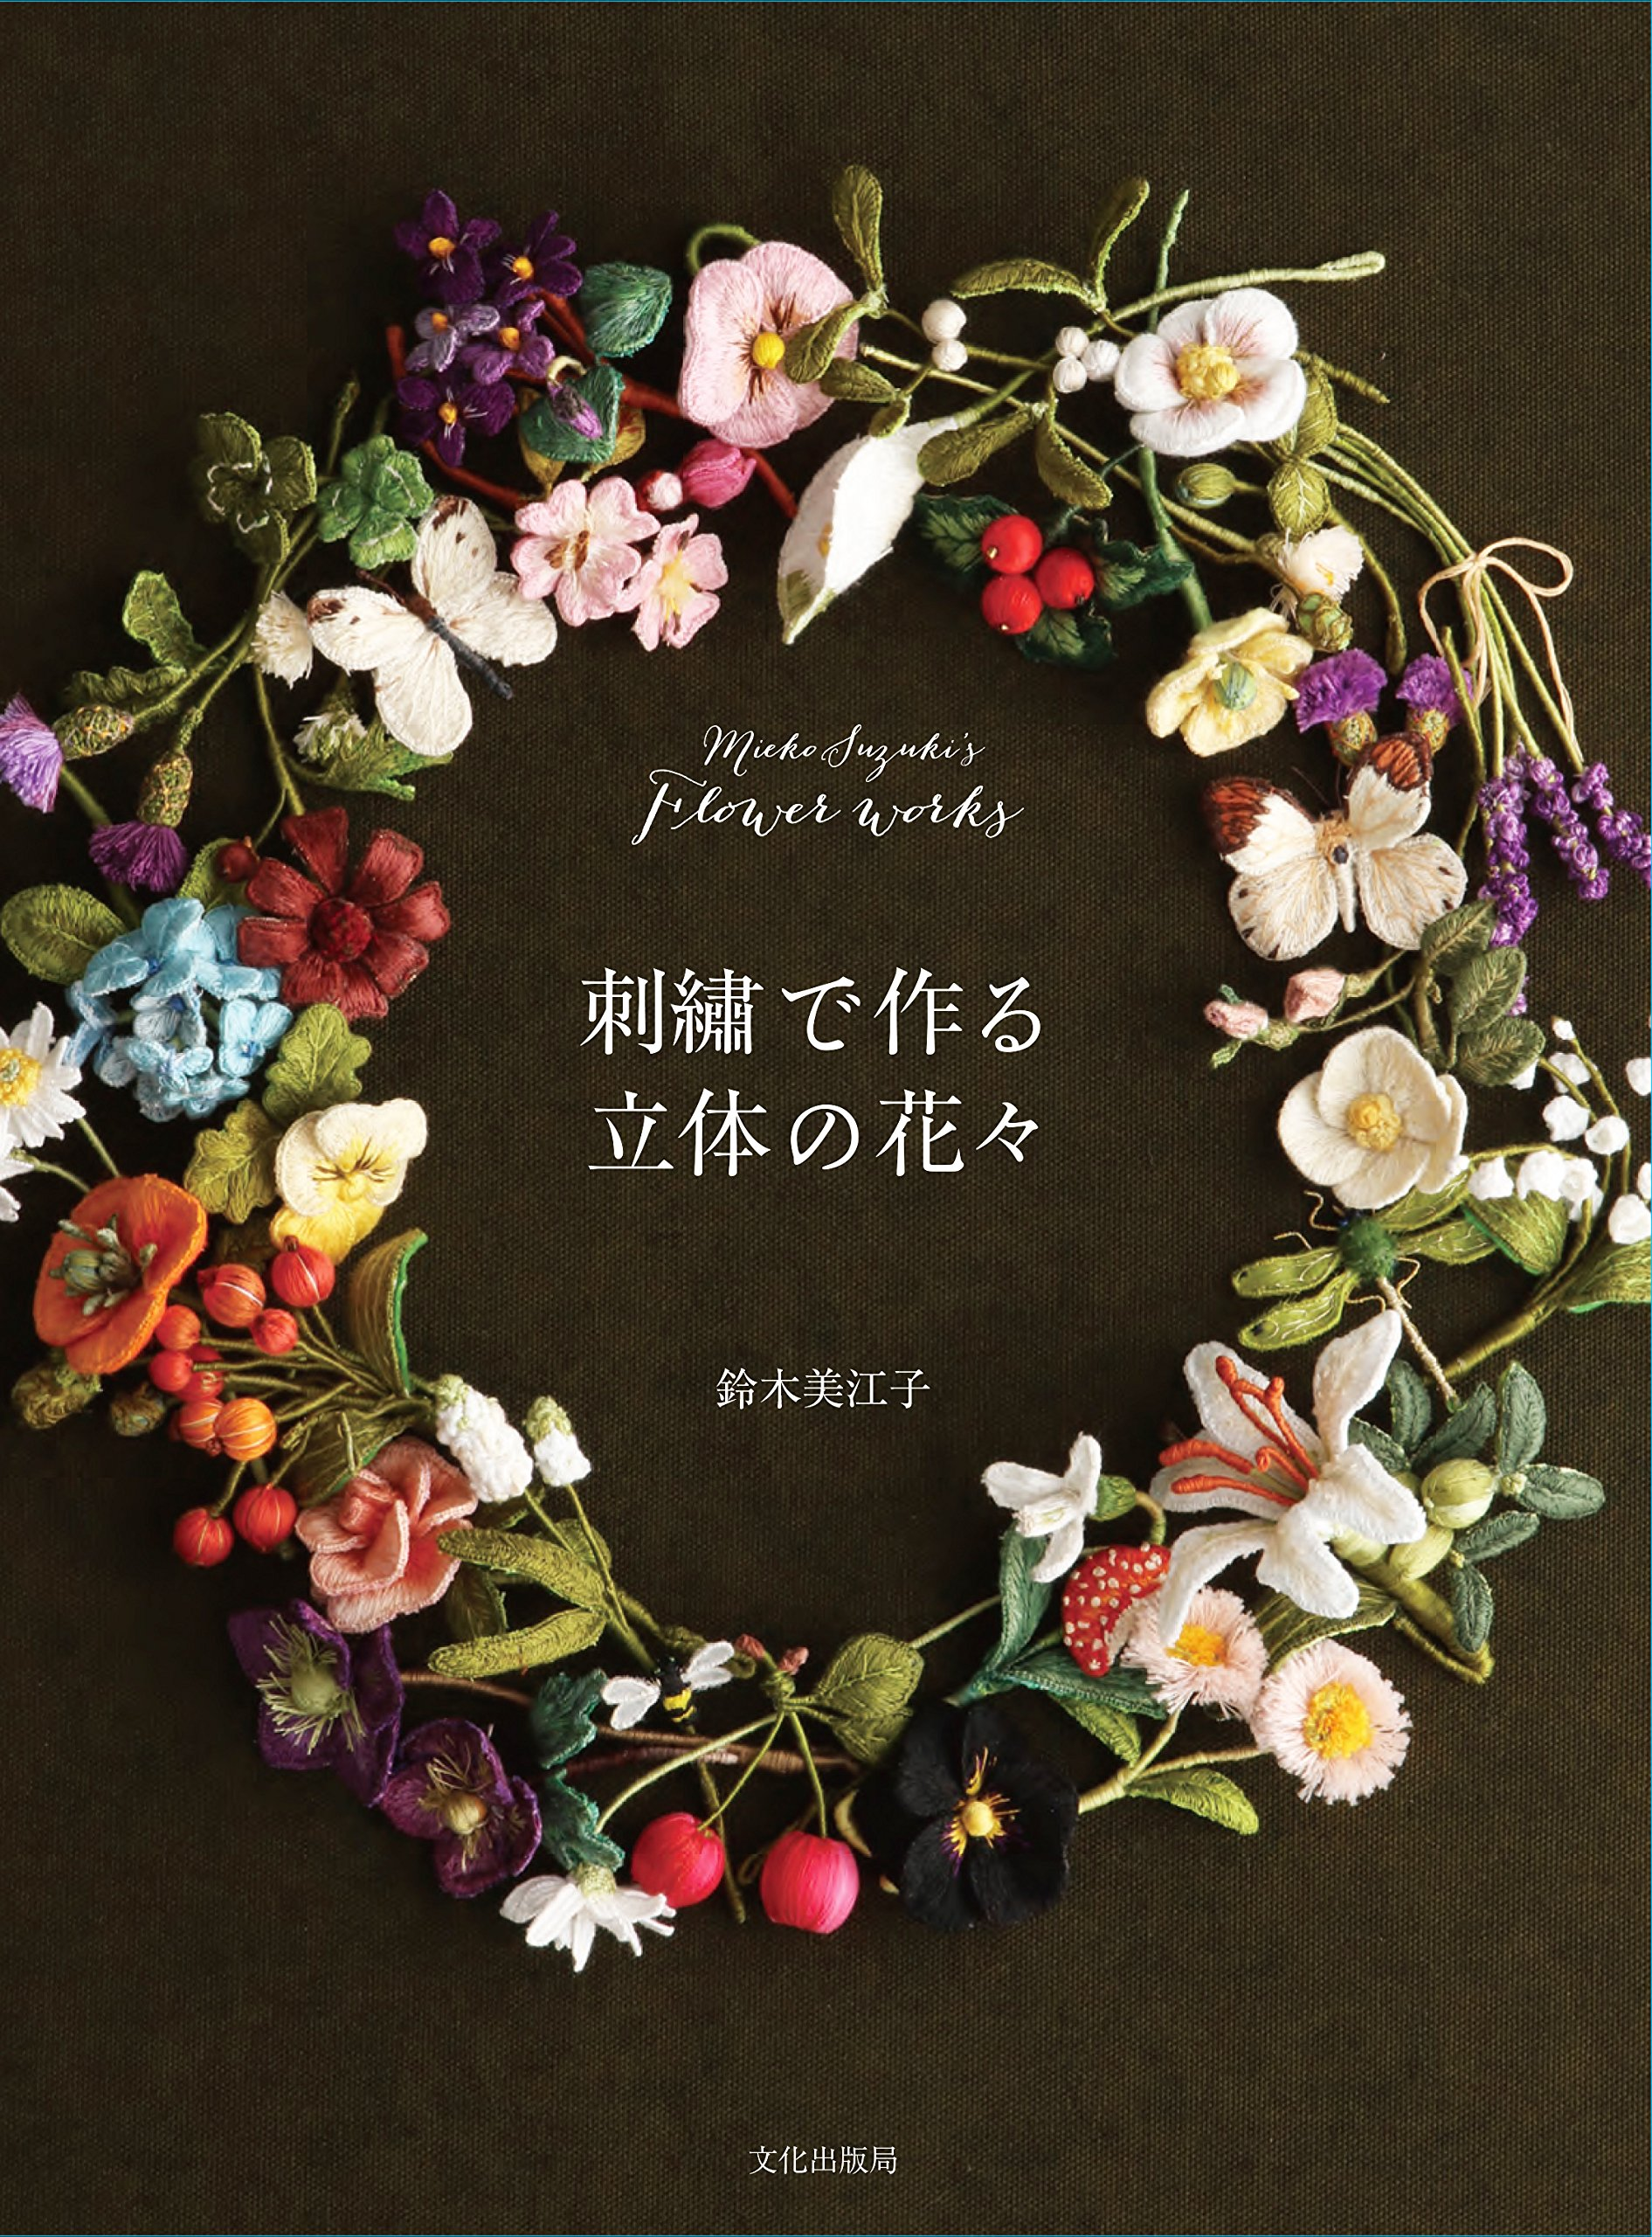 Mieko Suzuki Flower works